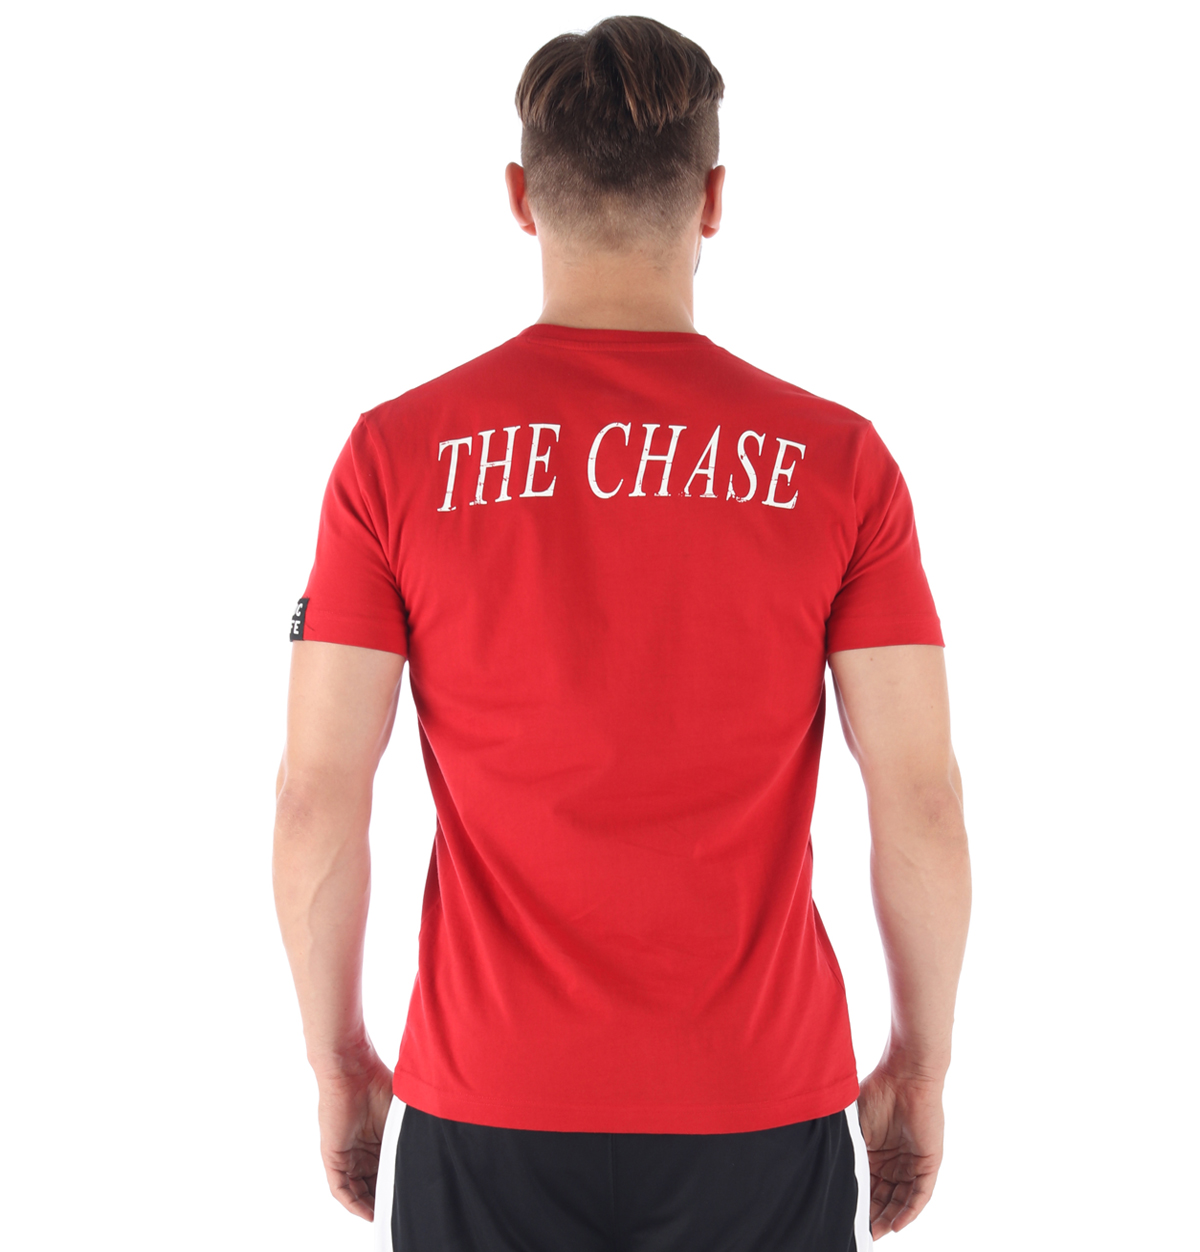 MRNT_THE_CHASE_RED_BACK.jpg